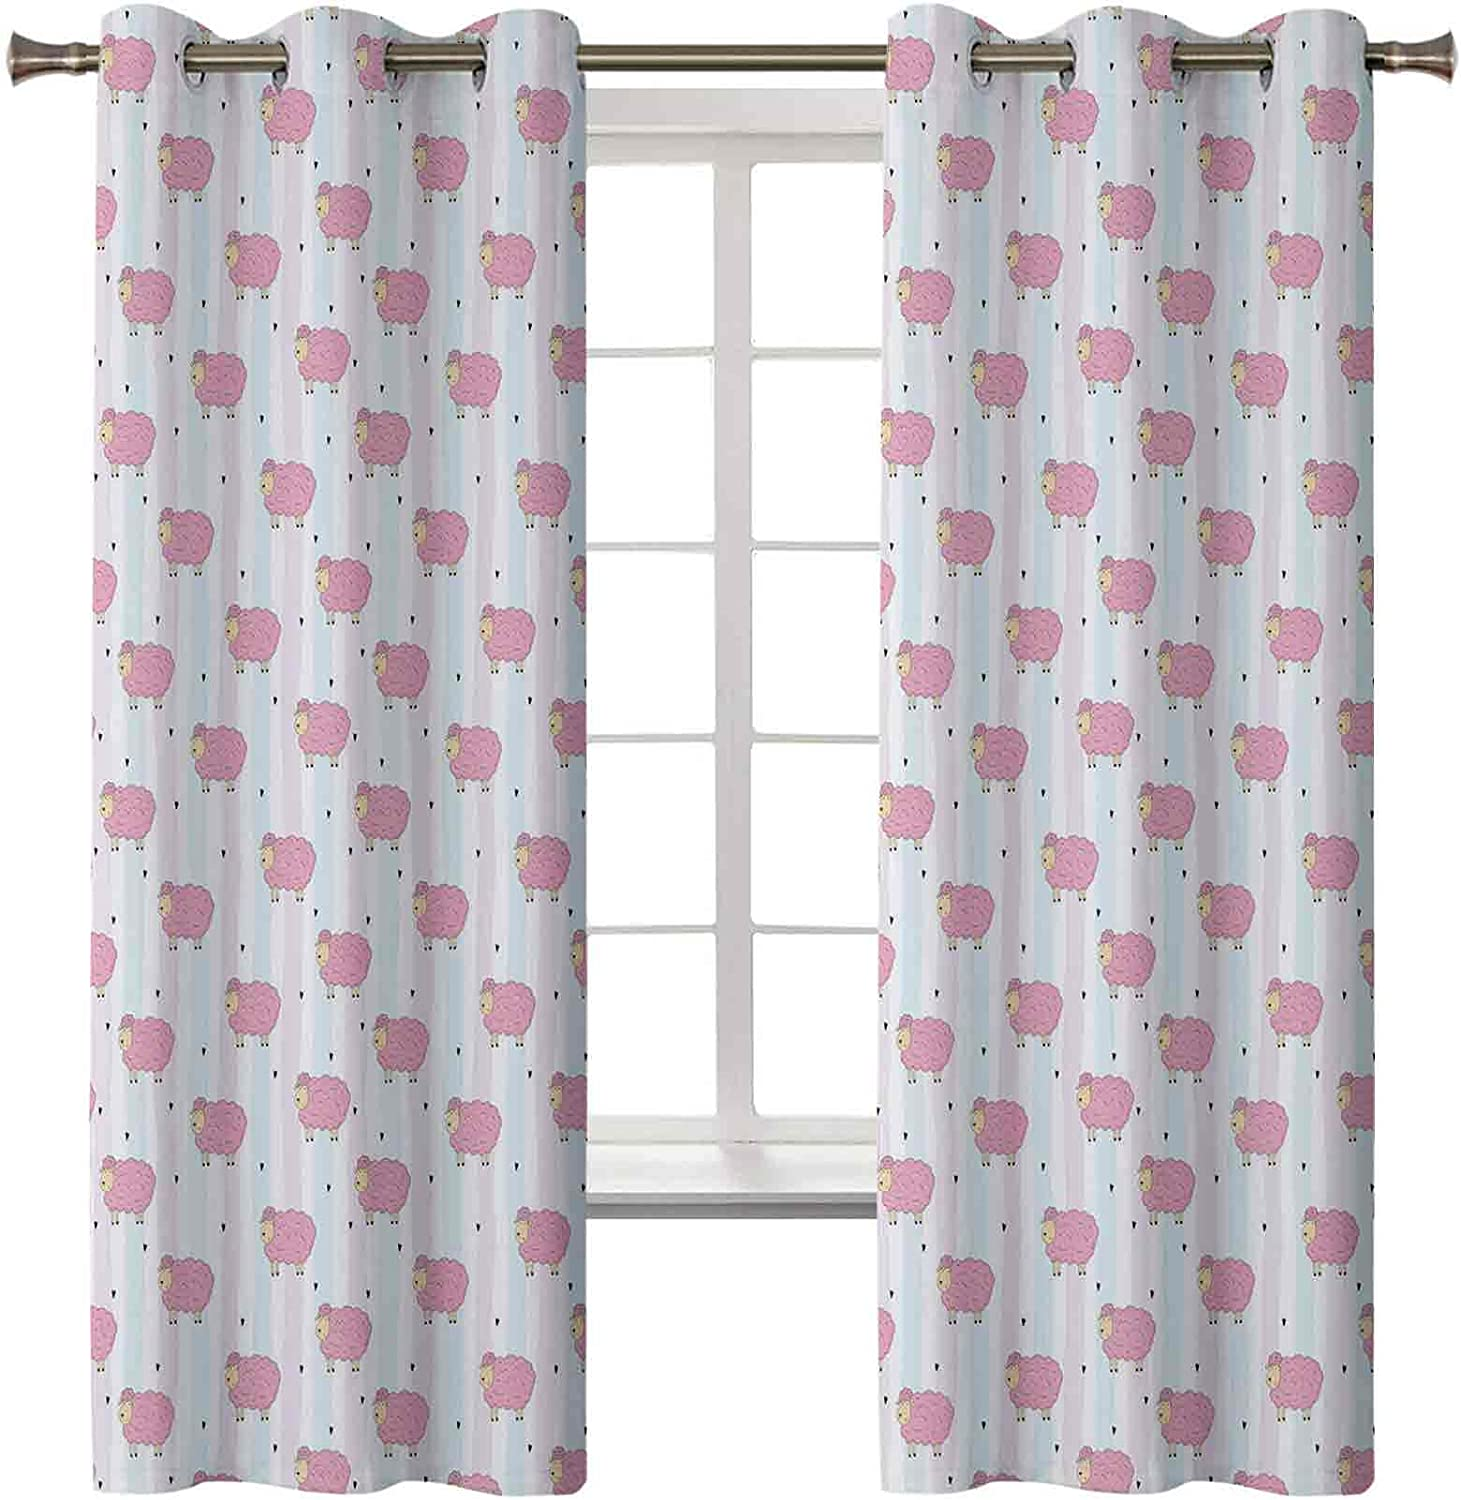 Nursery Thermal Insulated Luxury goods Fashionable Curtains Cartoon Abstract wi Sheep of